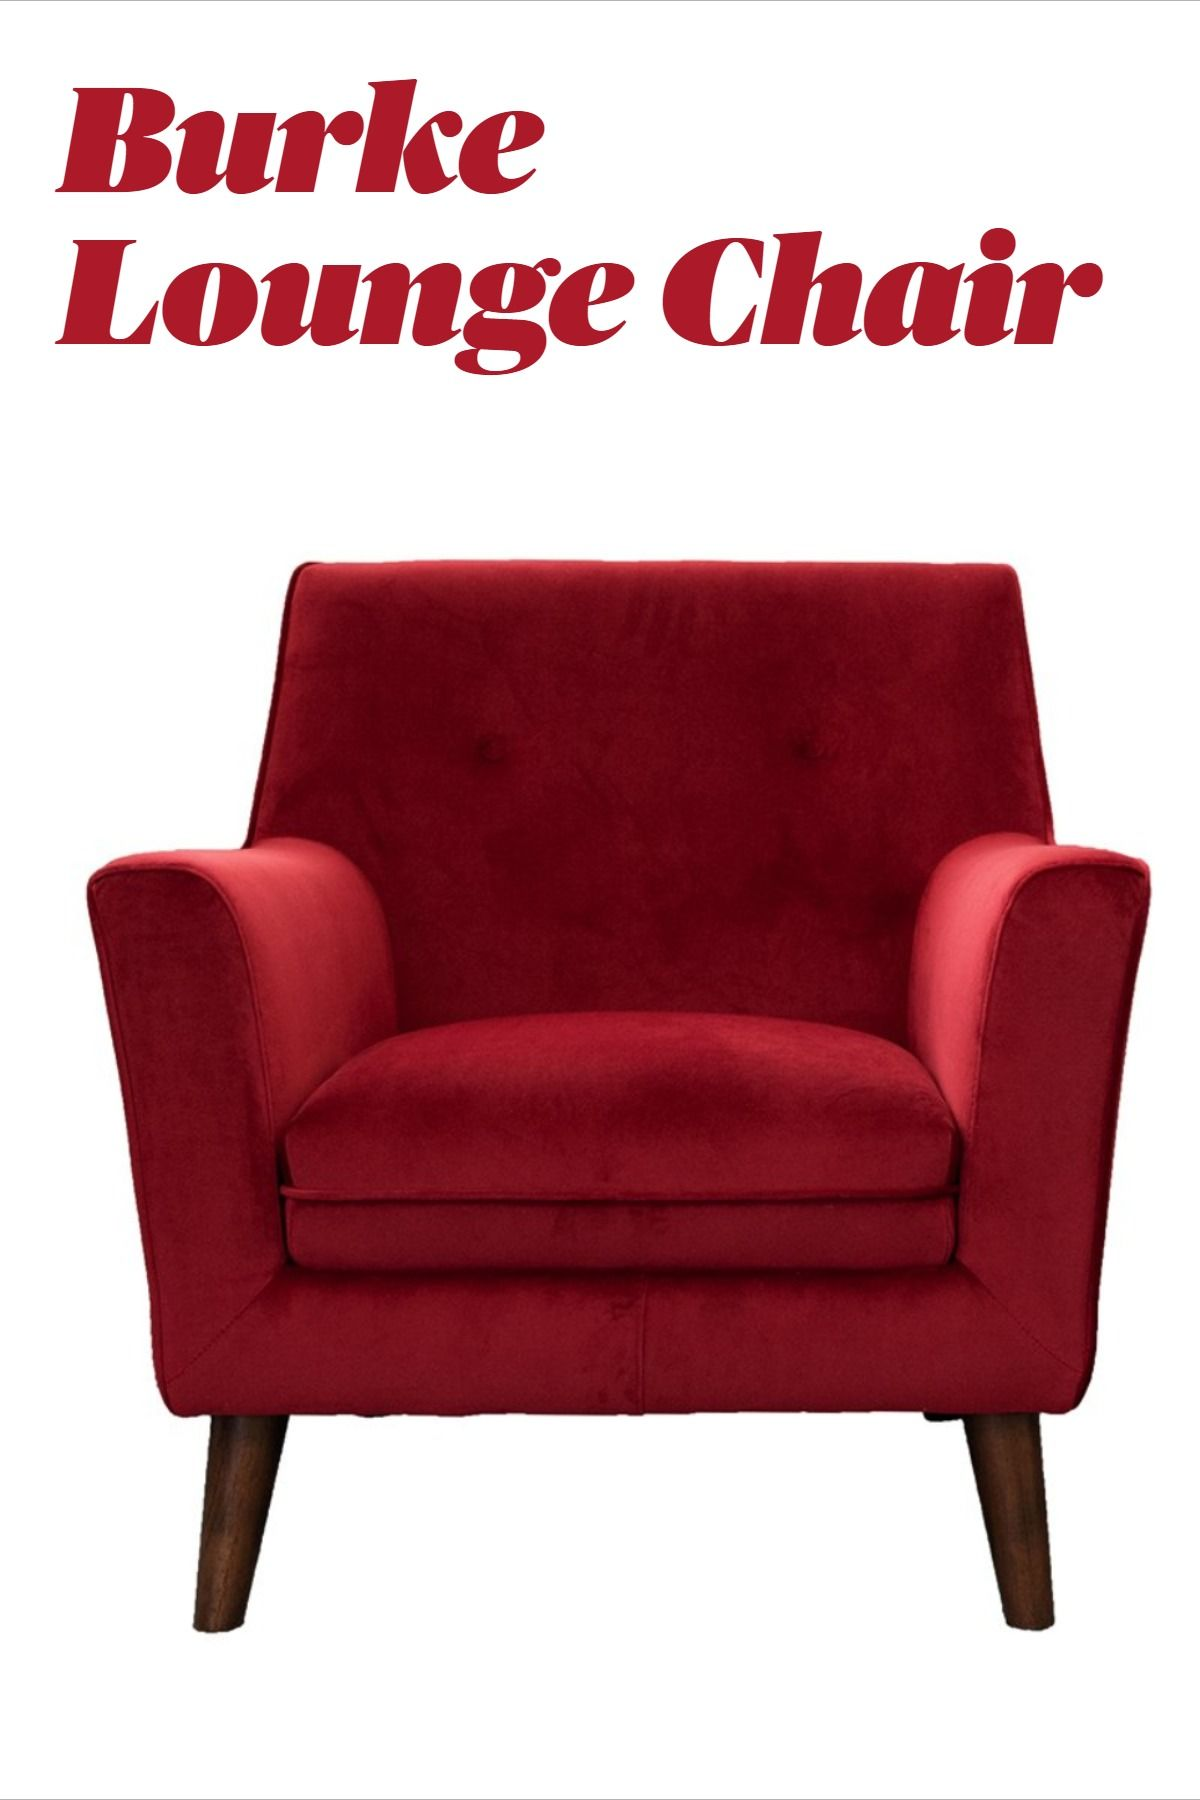 Elevate Your Home With The Comfort And Style Of This Armchair